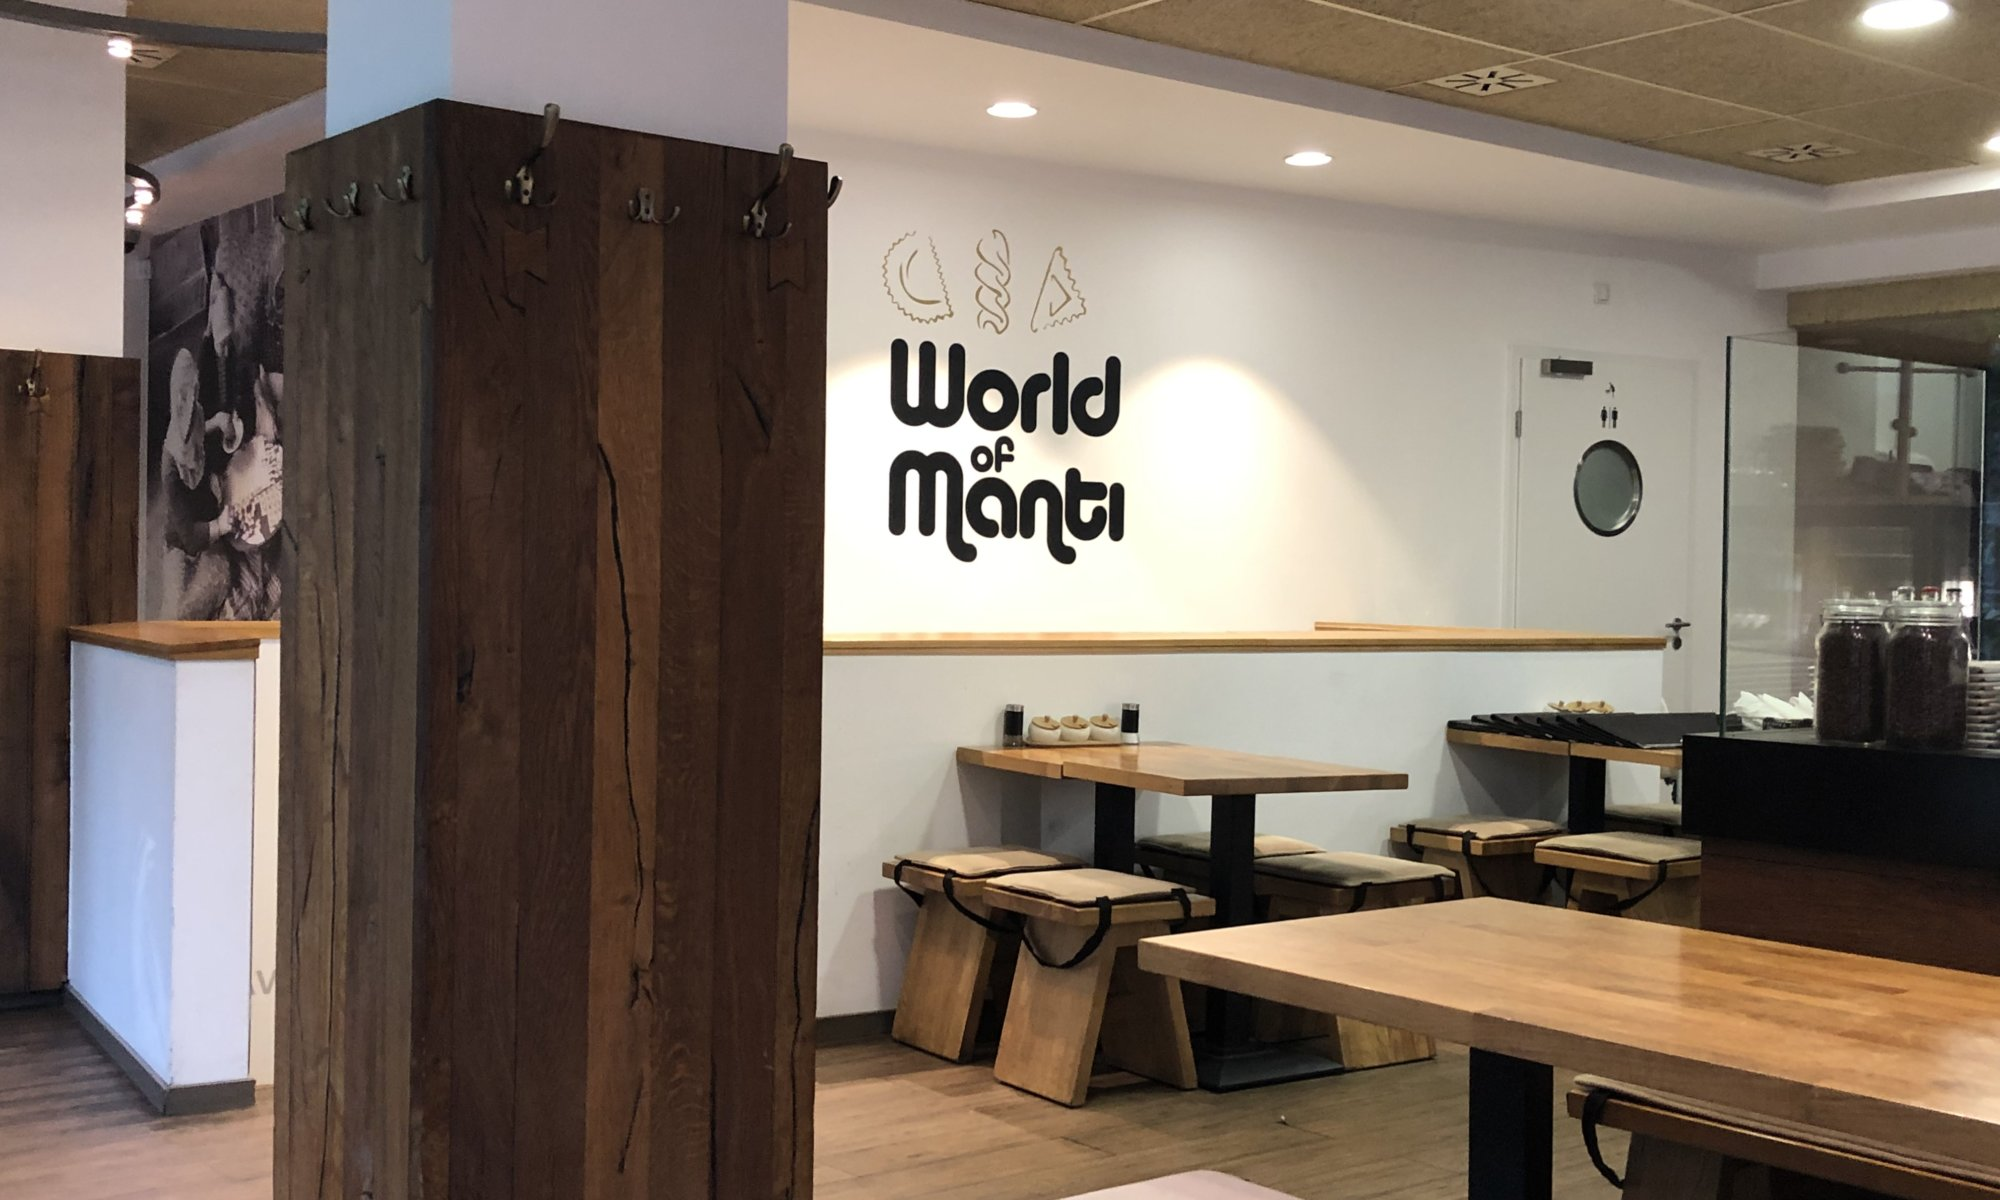 World of Manti, Stuttgart